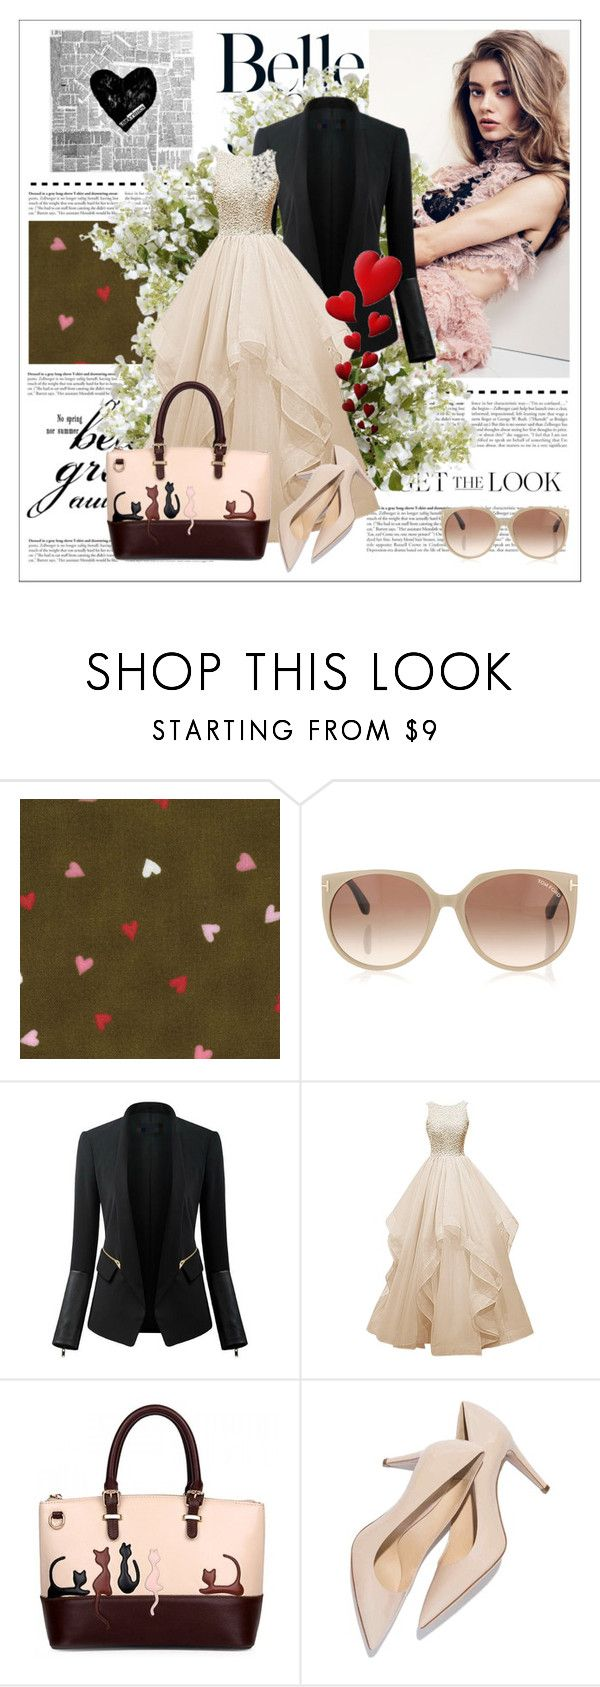 """""""get the look"""" by smile-2528 ❤ liked on Polyvore featuring Tom Ford, Chicsense, New Growth Designs, women's clothing, women's fashion, women, female, woman, misses and juniors"""